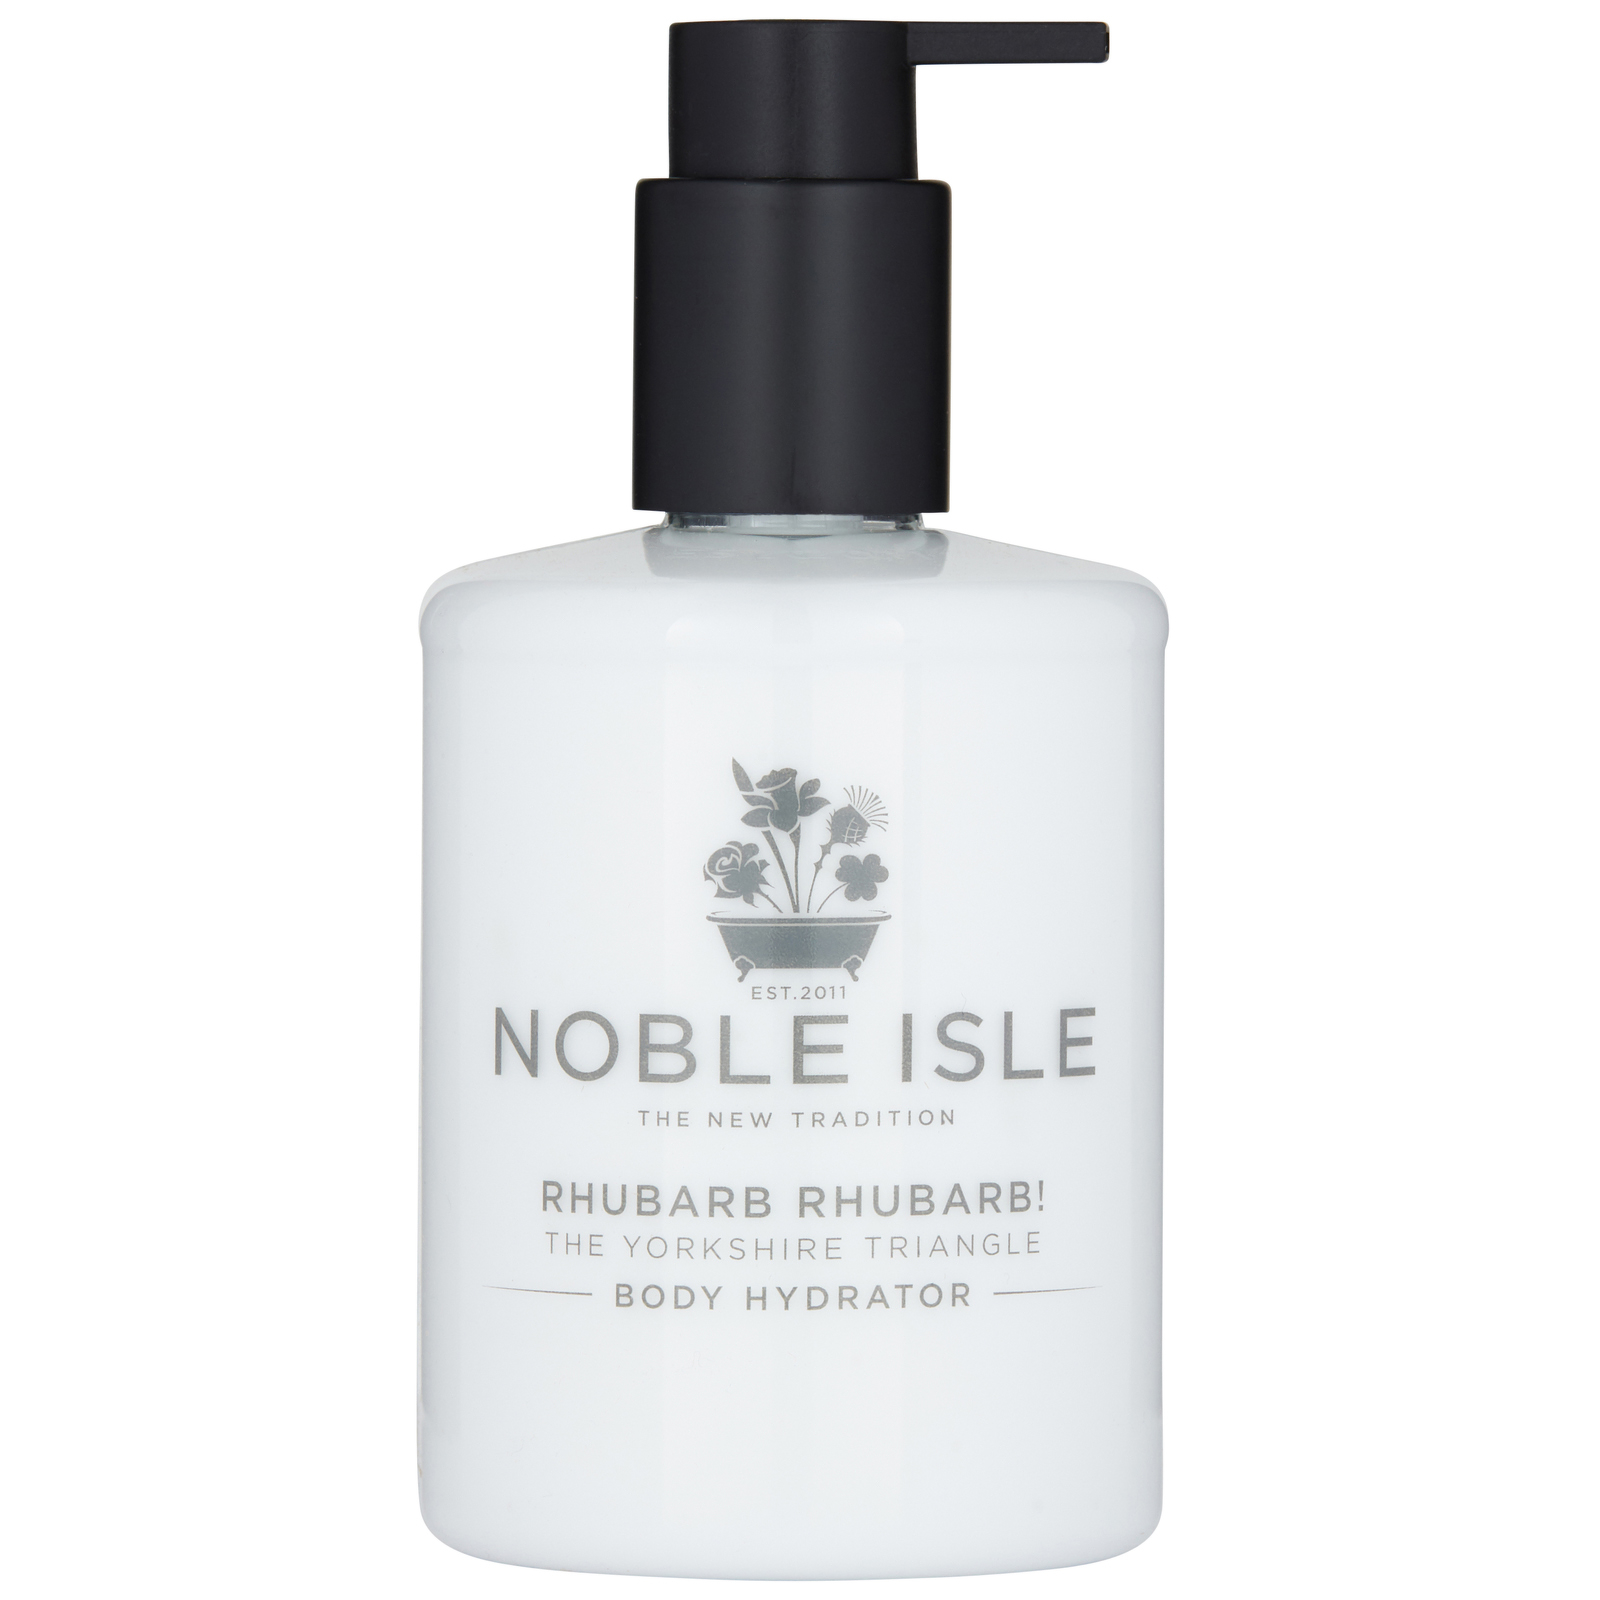 Noble Isle Body Lotion Rhubarb Rhubarb Body Hydrator 250ml